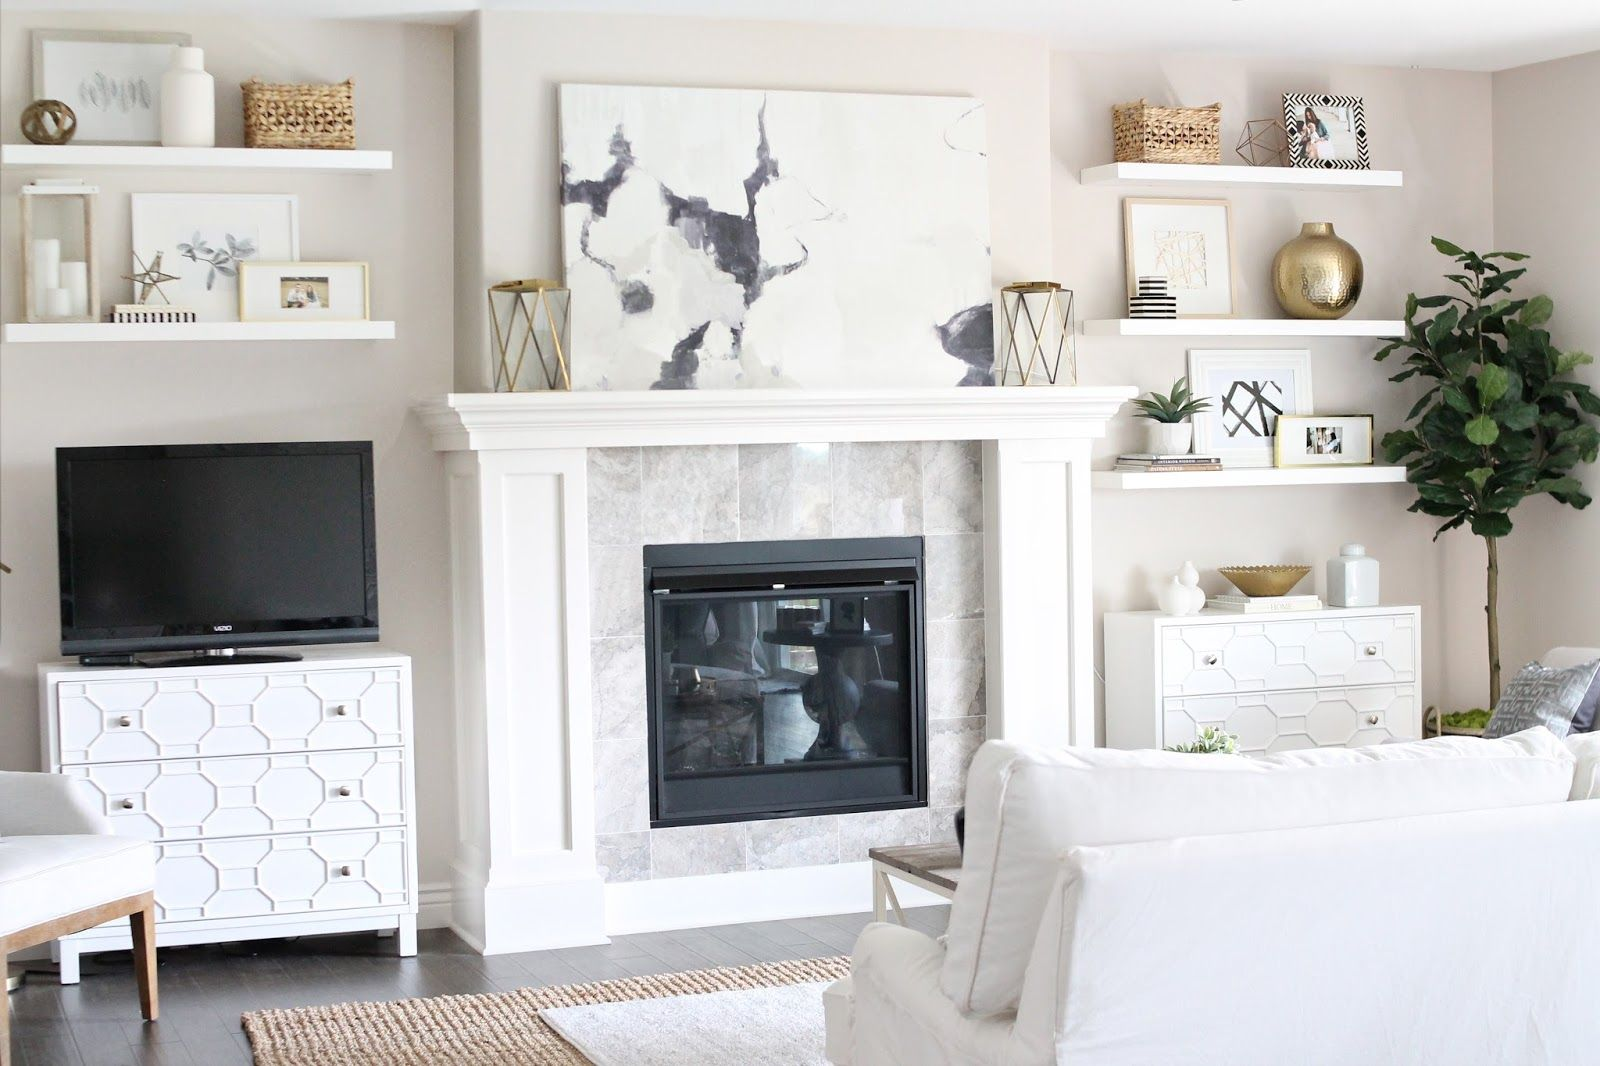 Living Room Reveal {How to Fake Built-In Shelving} | Room tour ...